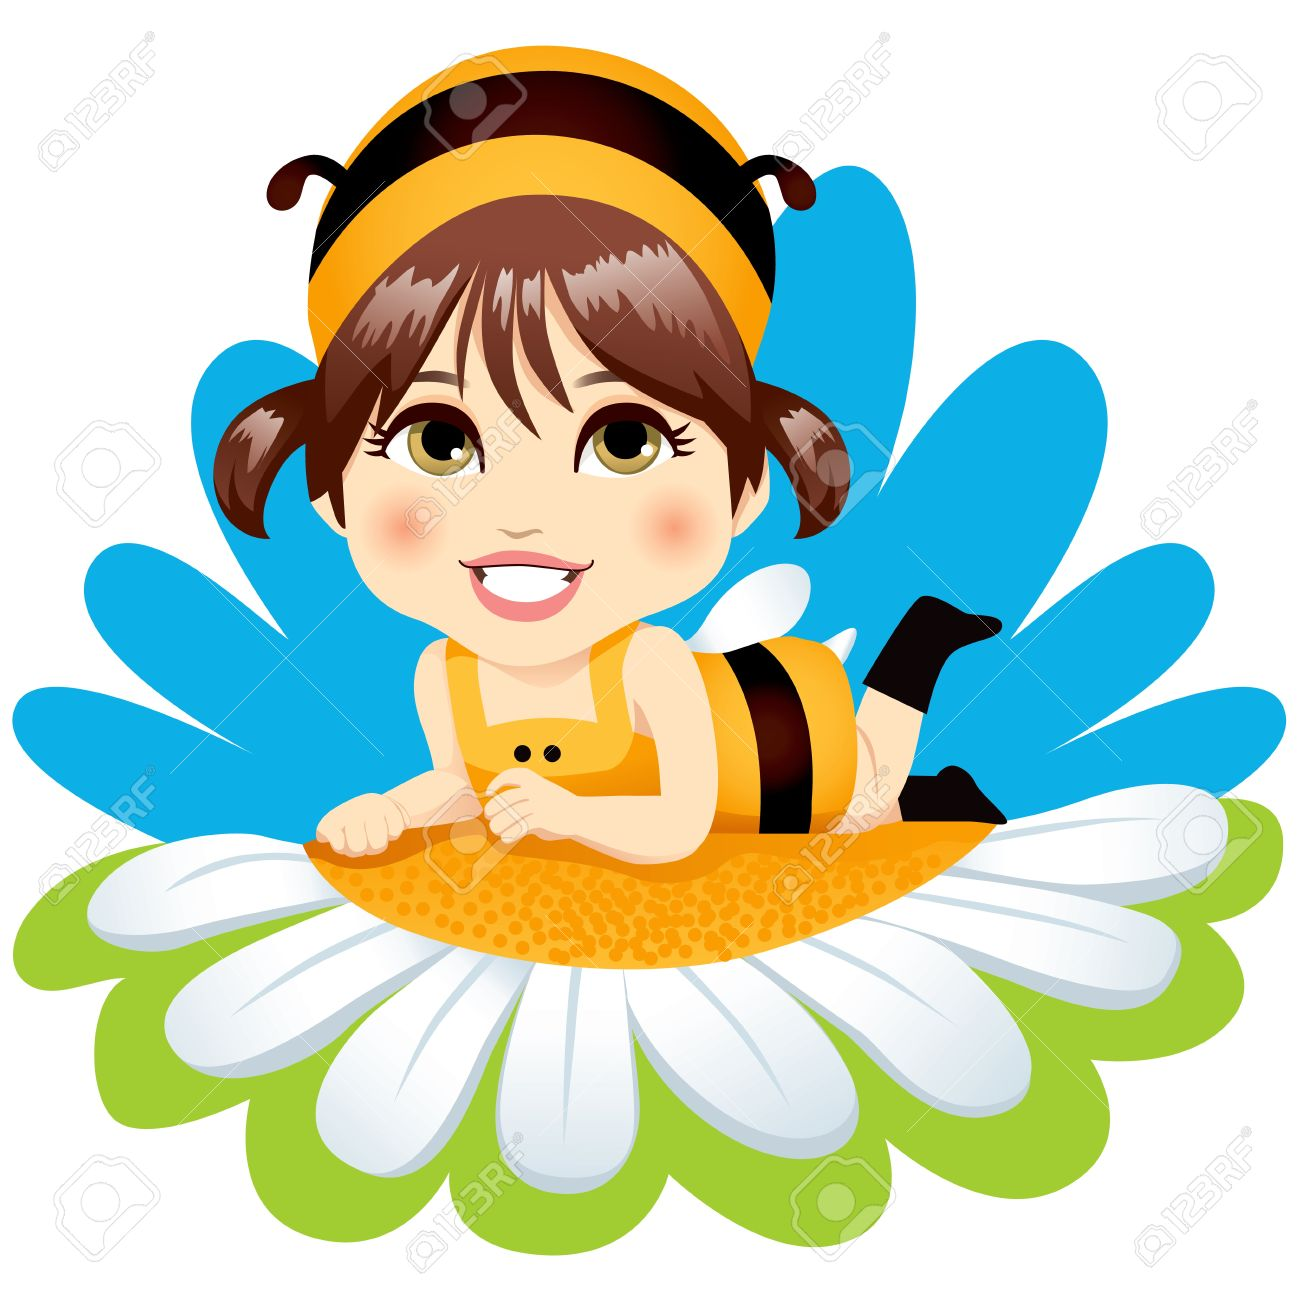 Cute little baby girl with bee costume resting lying down on top of a white daisy  sc 1 st  123RF.com & Cute Little Baby Girl With Bee Costume Resting Lying Down On ...